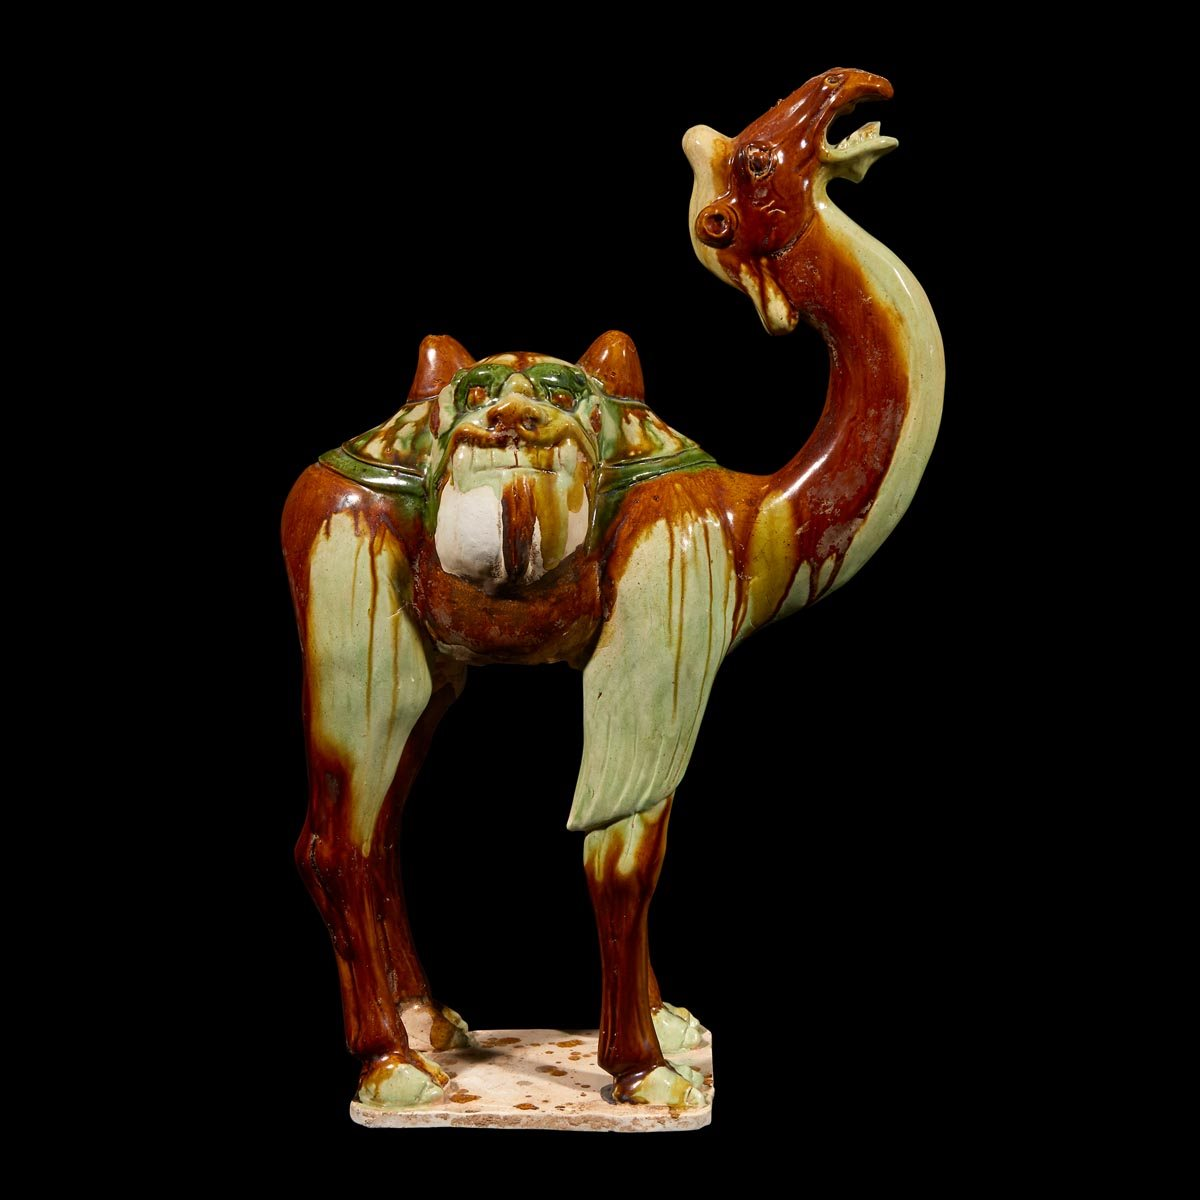 Lot 23: A Chinese sancai-glazed pottery model of a camel, Tang dynasty, $7,000-9,000, to be offered at Freeman's on March 12, 2019.